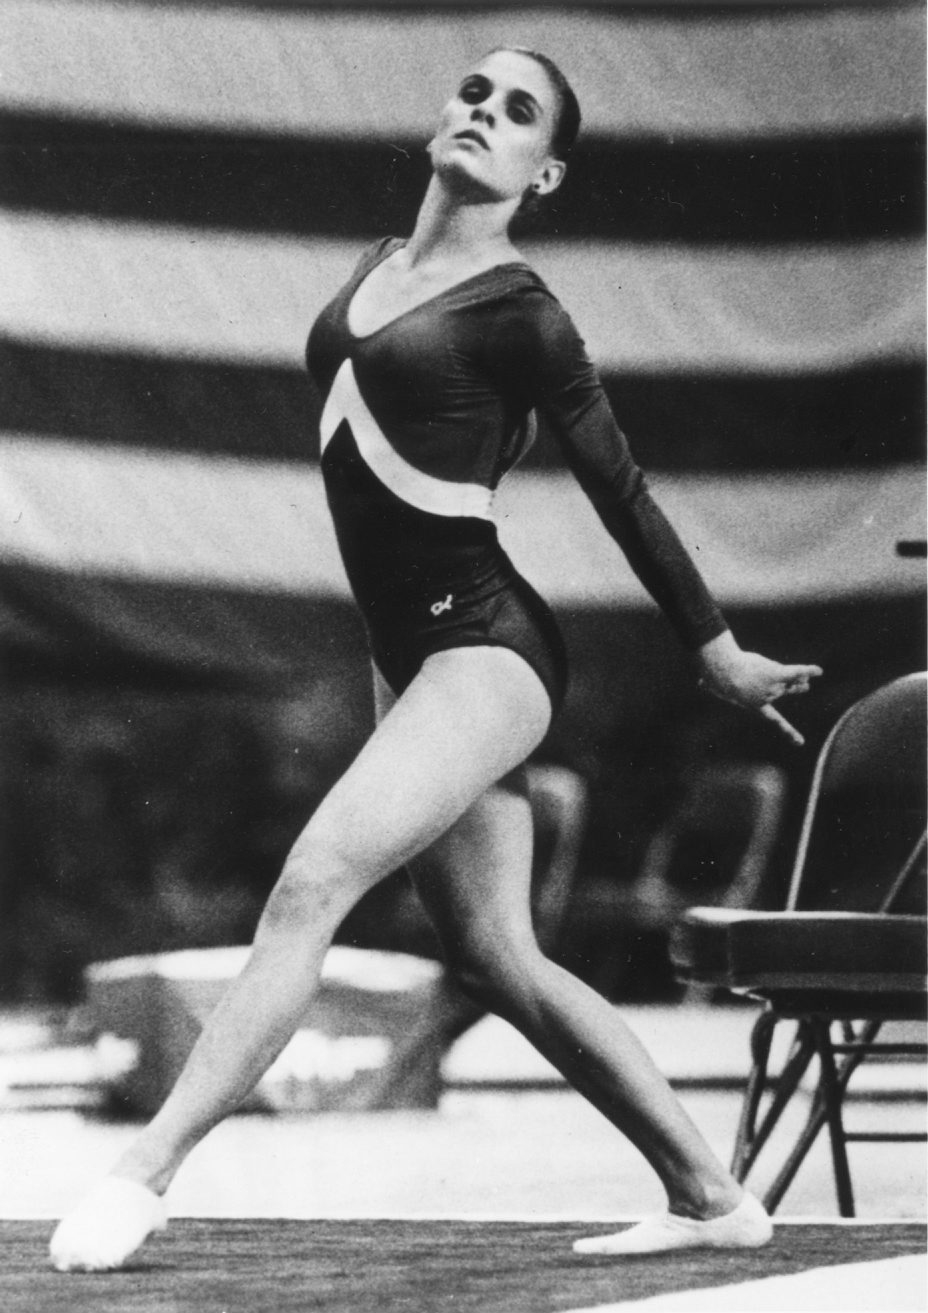 Lisa Zeis won NCAA championships on balance beam and floor exercise during her career at Arizona State.